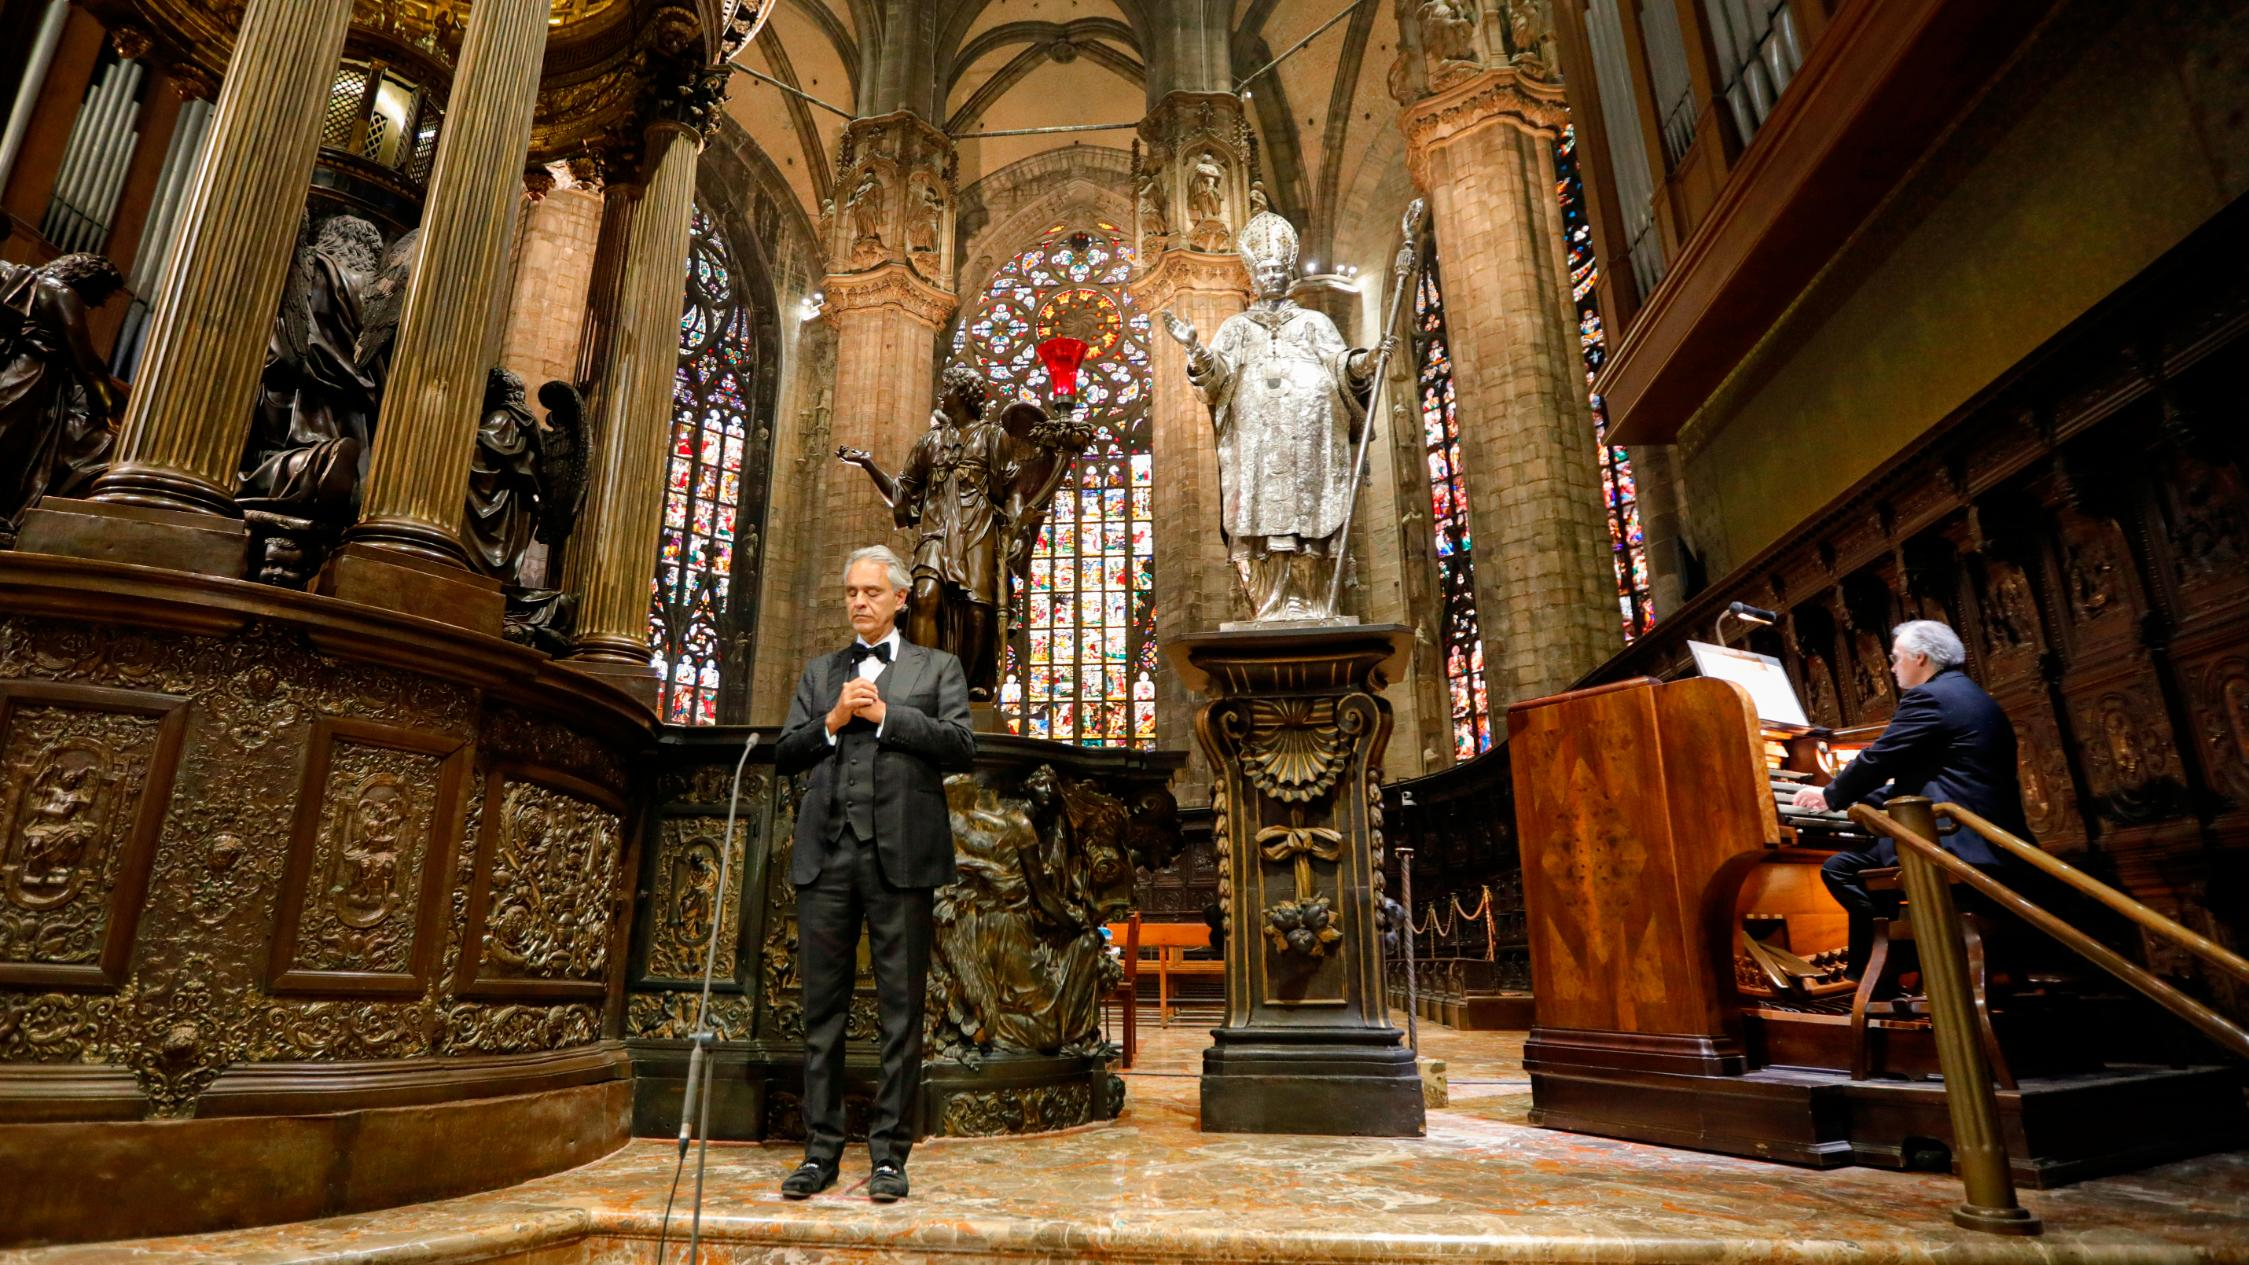 The cathedral is closed to the public because of the coronavirus pandemic. (Luca Rossetti/Sugar Srl, Decca Records/AP)